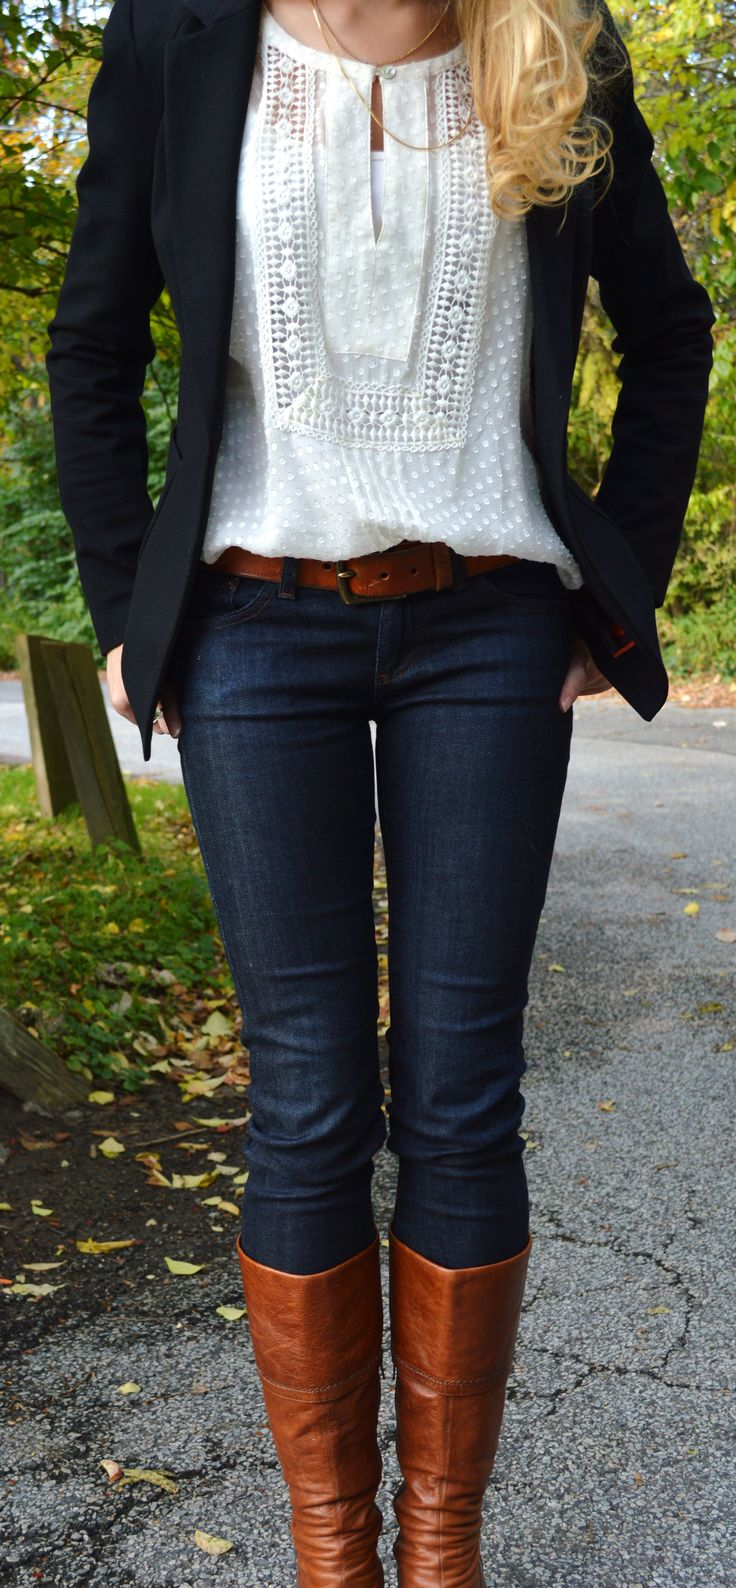 I have been wearing this outfit for years.  It will never go out of style. Jeans, boots, white shirt and navy blazer.: Lace Tops, Navy Blazers, Long Boots, White Shirts, Fall Fashion, Fall Outfit, White Blouses, Brown Boots, White Tops